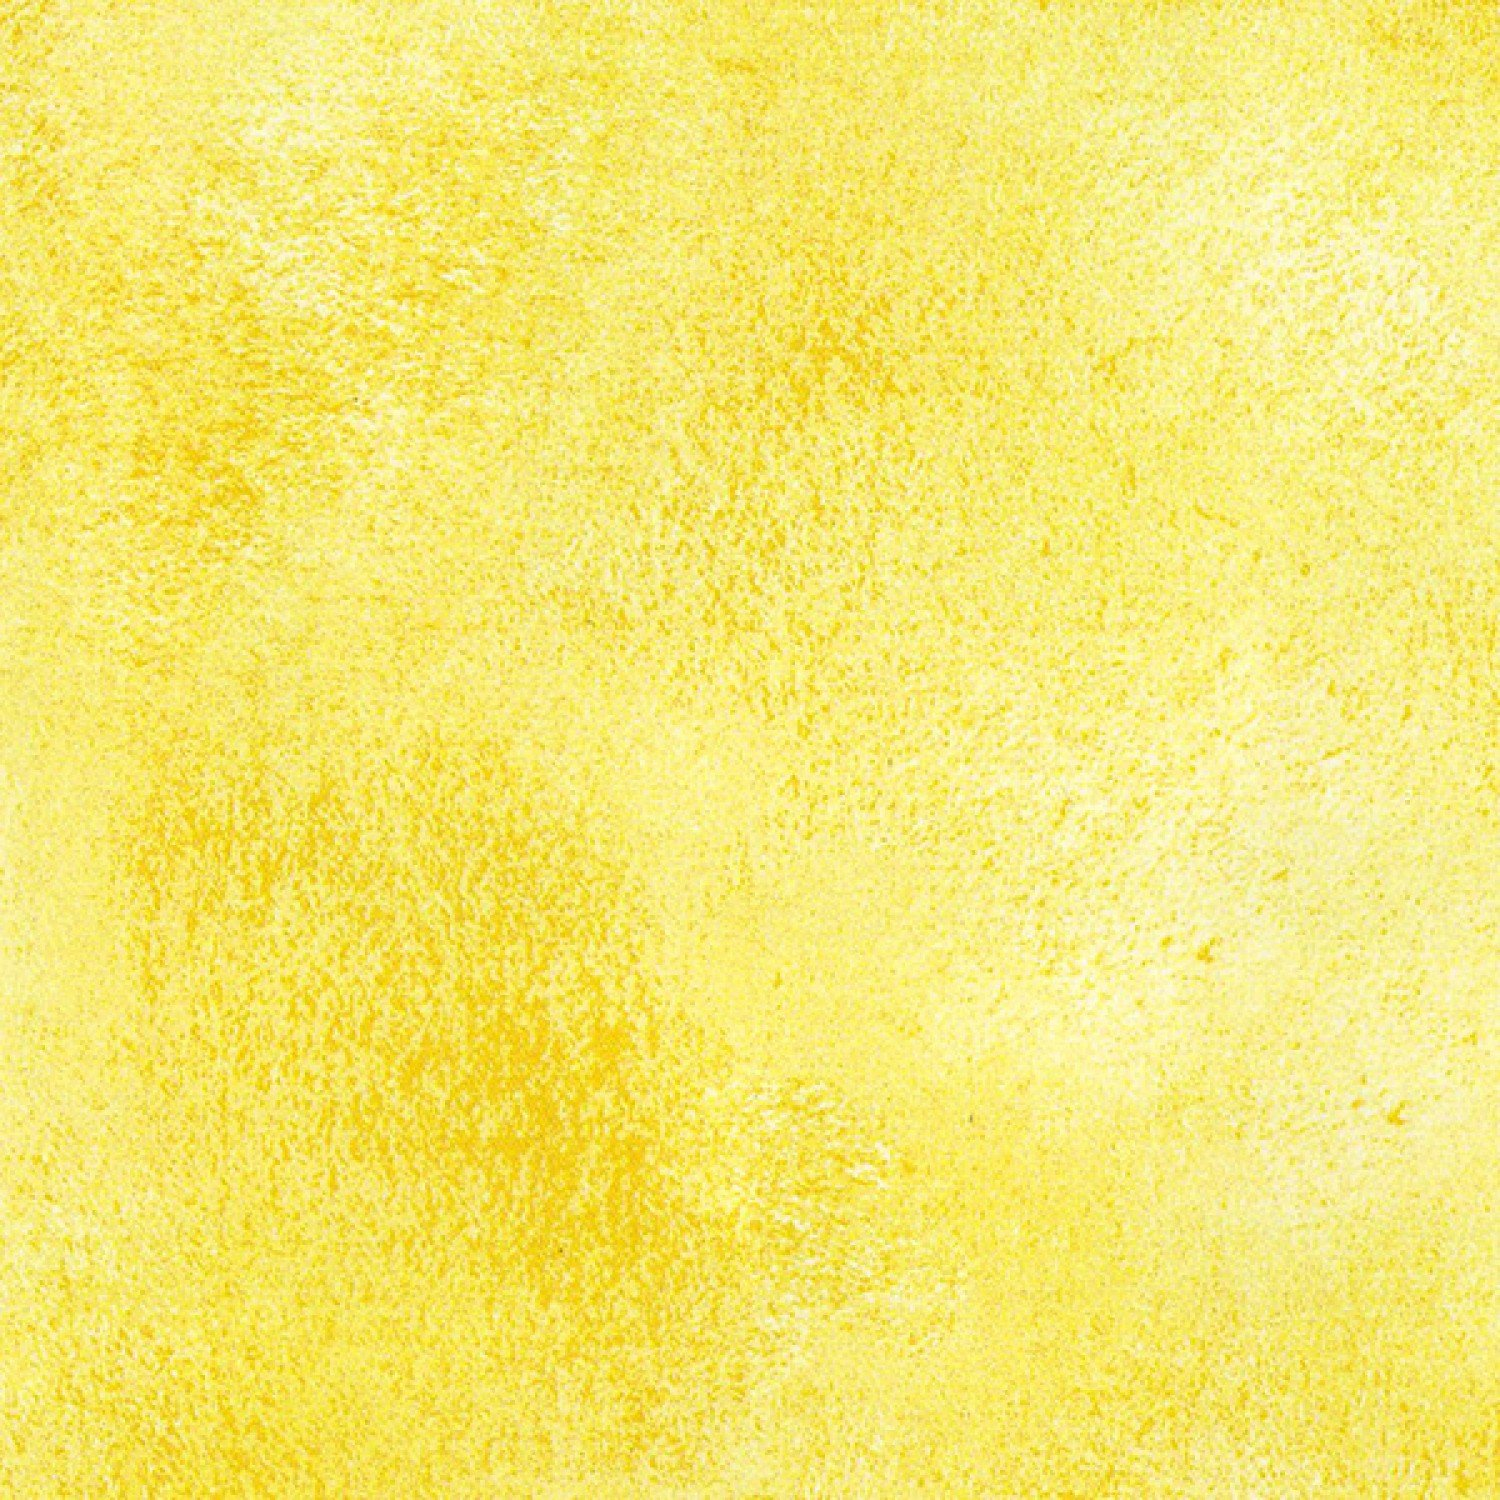 Light Yellow Washart